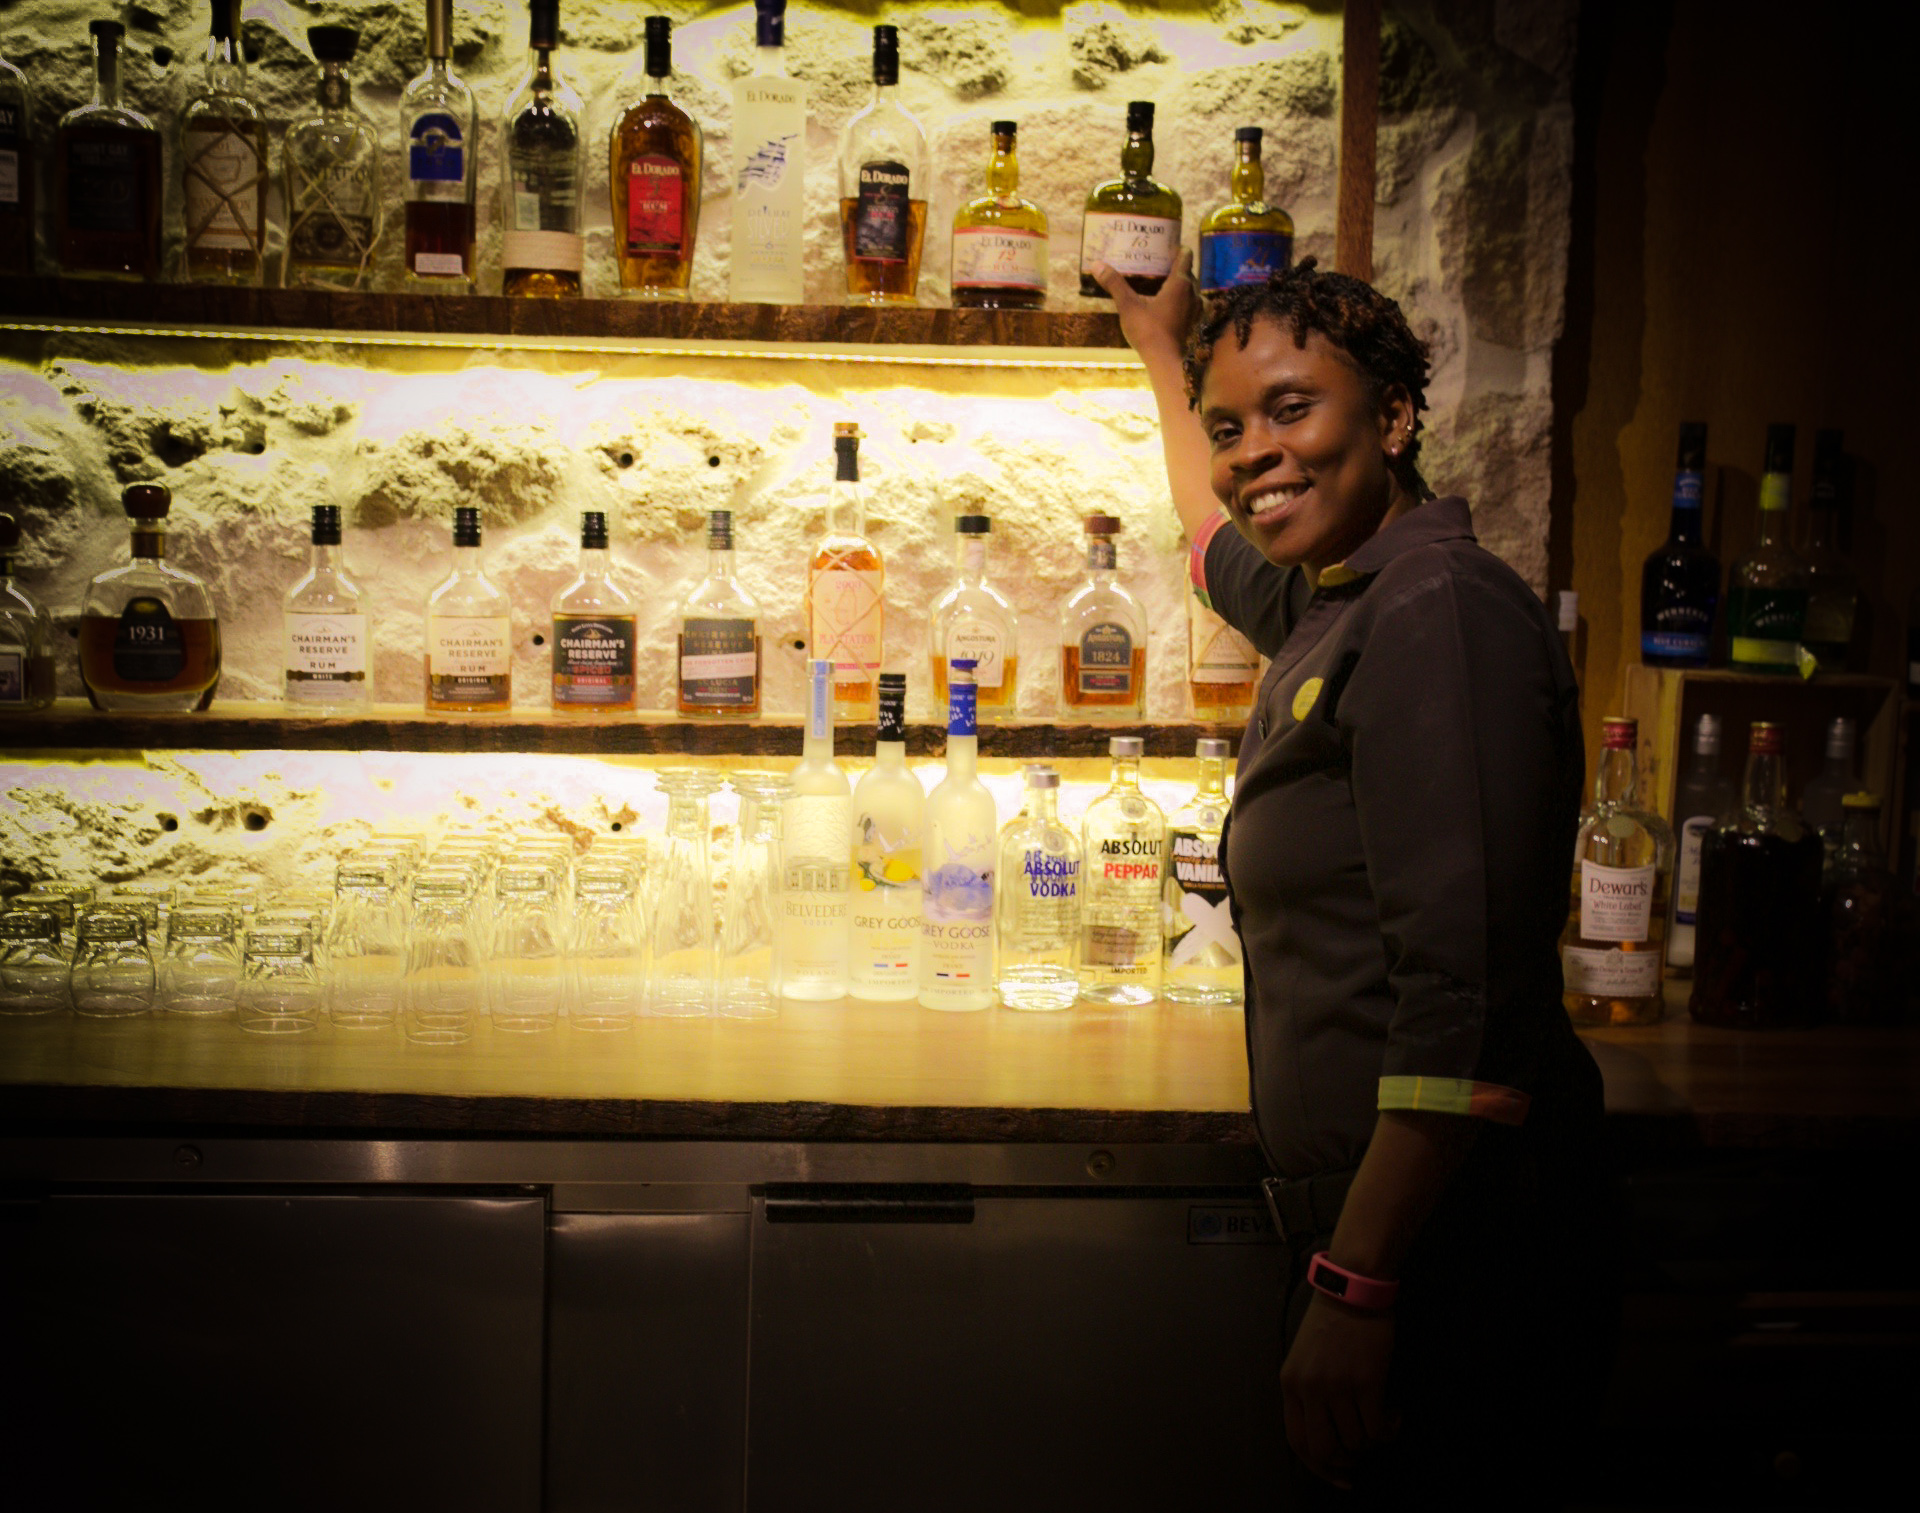 Very important reason to come to the carribean, DRINKS and you must celebrate every moment (and I mean every moment) with a luscious Caribbean inspired drink. Jessica is a master of all perfect mixes within a glass at Ti Kaye Resort please pay her many visits during your stay and you will not be disappointed! Also she provides a very fun and informative rum and chocolate tasting presentation a must do. Believe me you know nothing about rums until you sign up for this and you will leave informed and feeling very HAPPY:) Photography Courtesy of The Aisle Photography